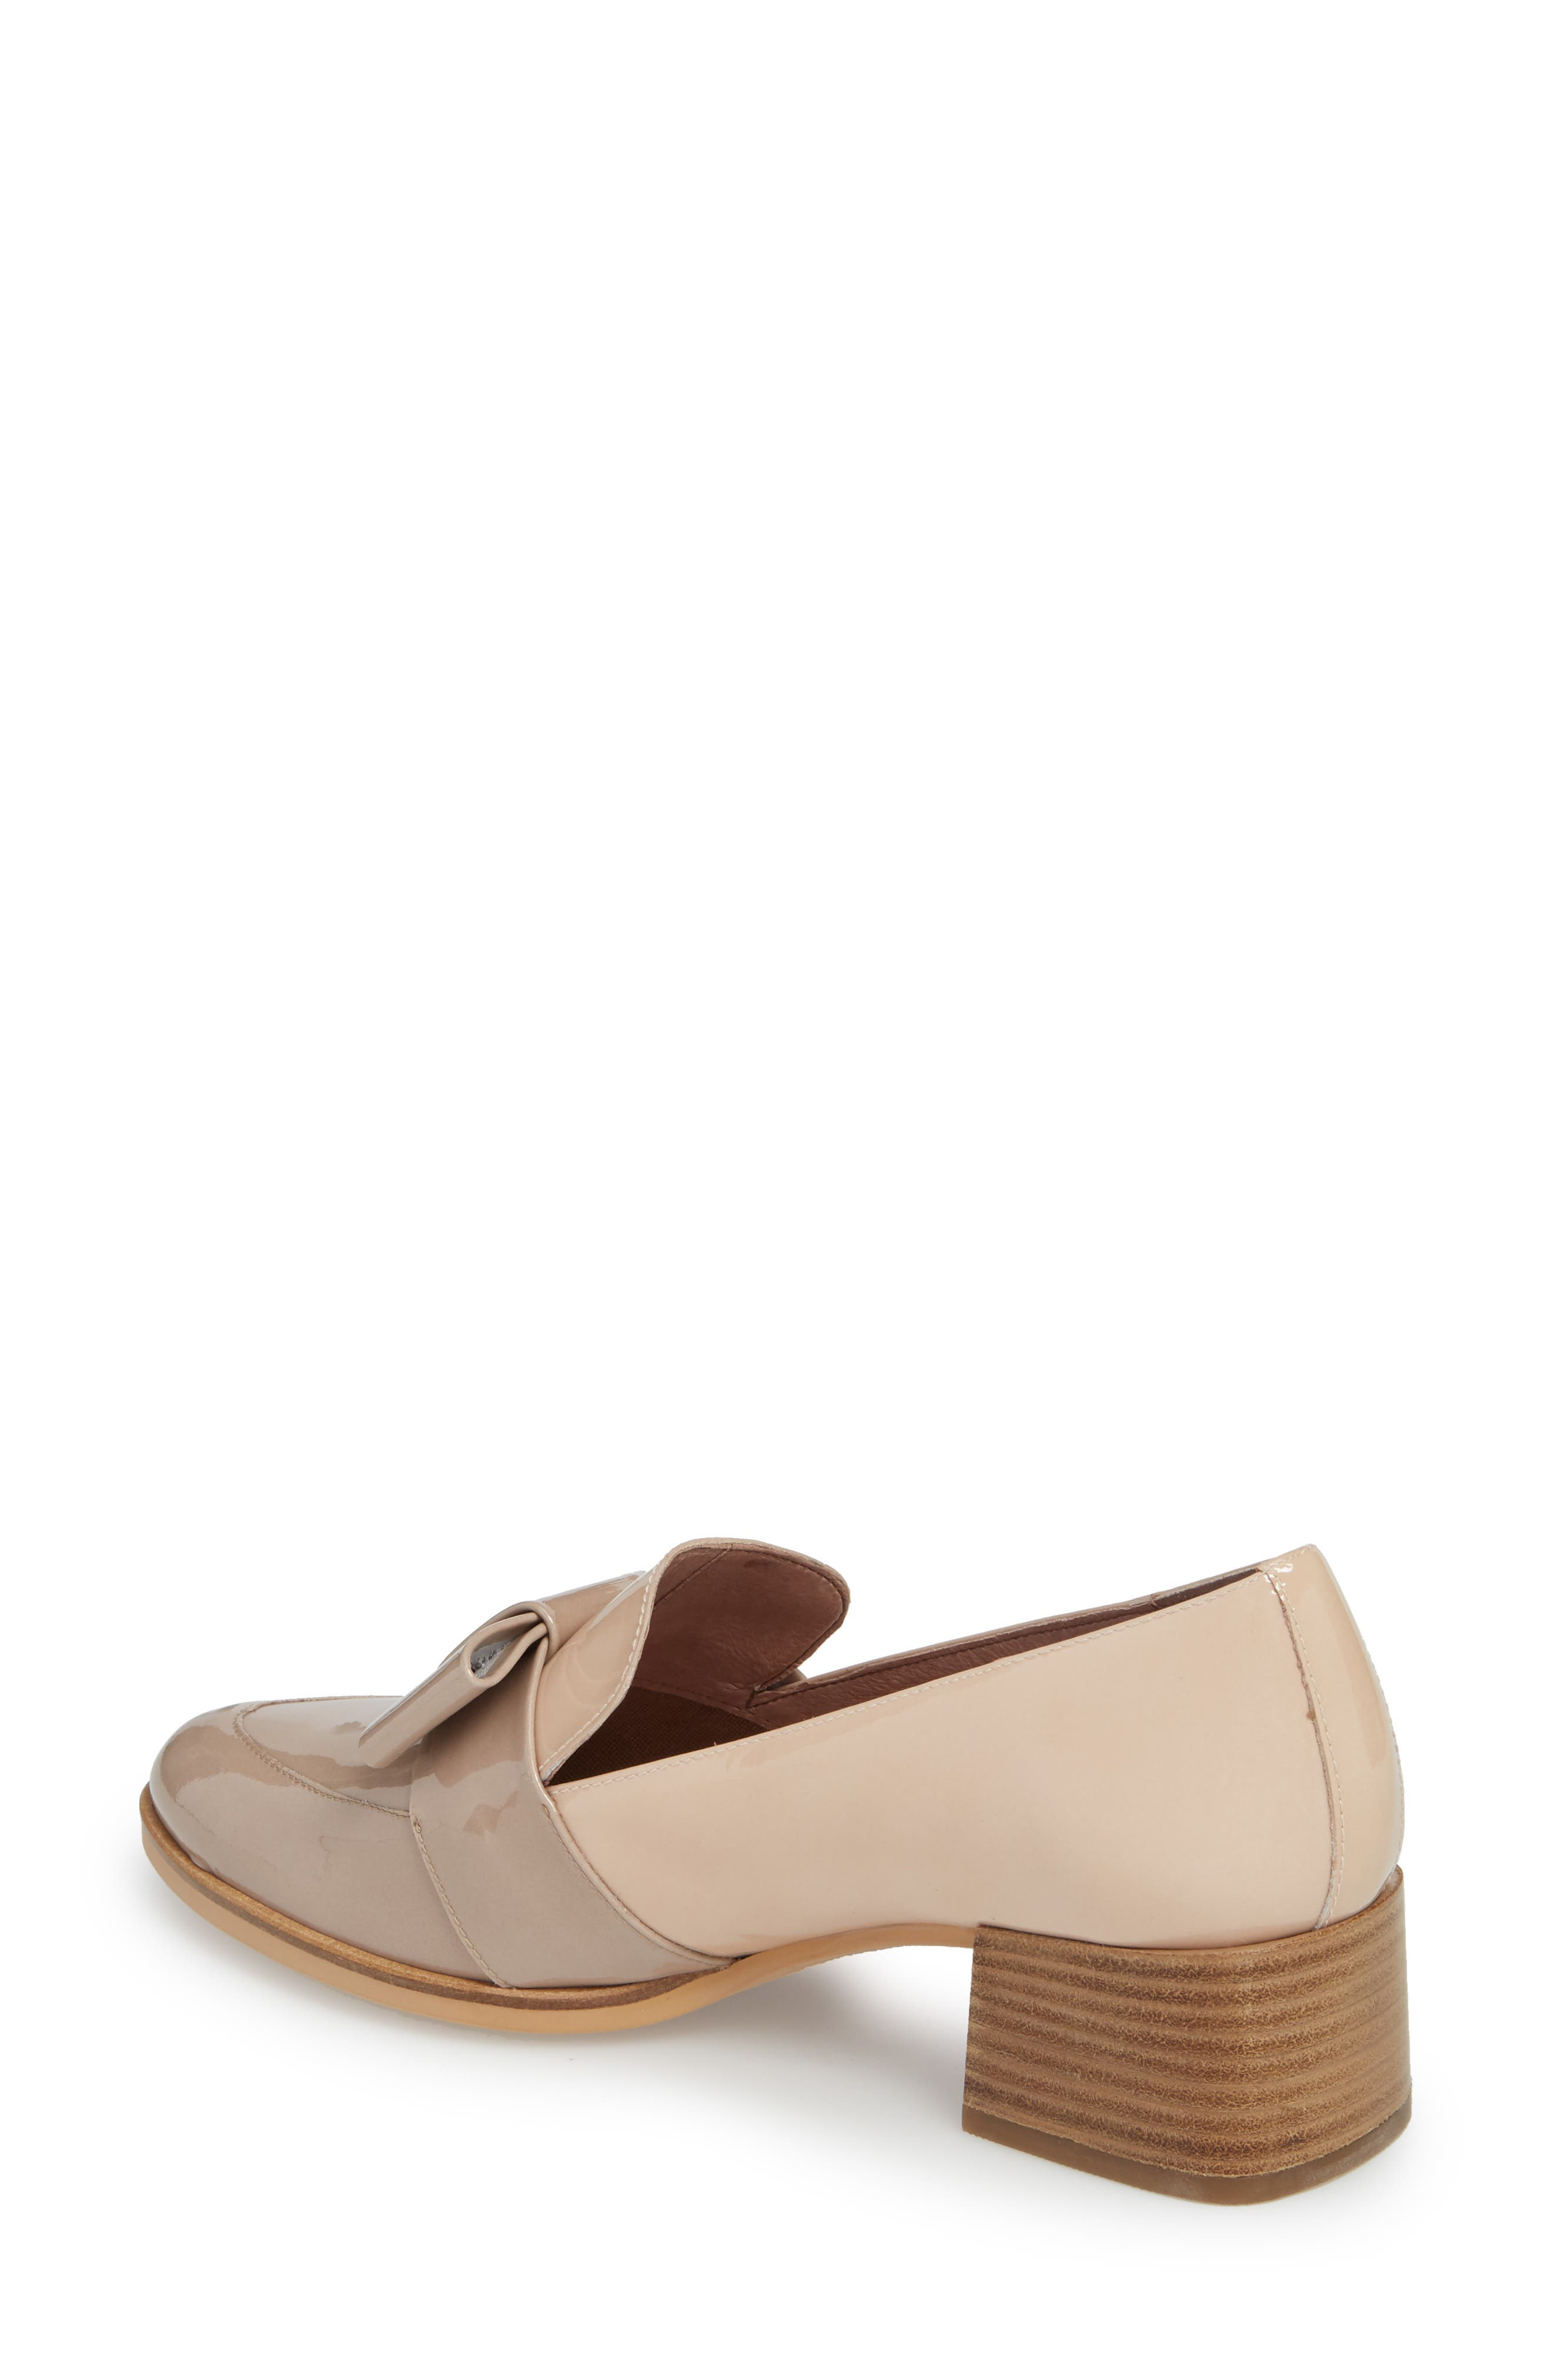 Block Heel Loafer Pump,                             Alternate thumbnail 2, color,                             Taupe/ Palo Patent Leather